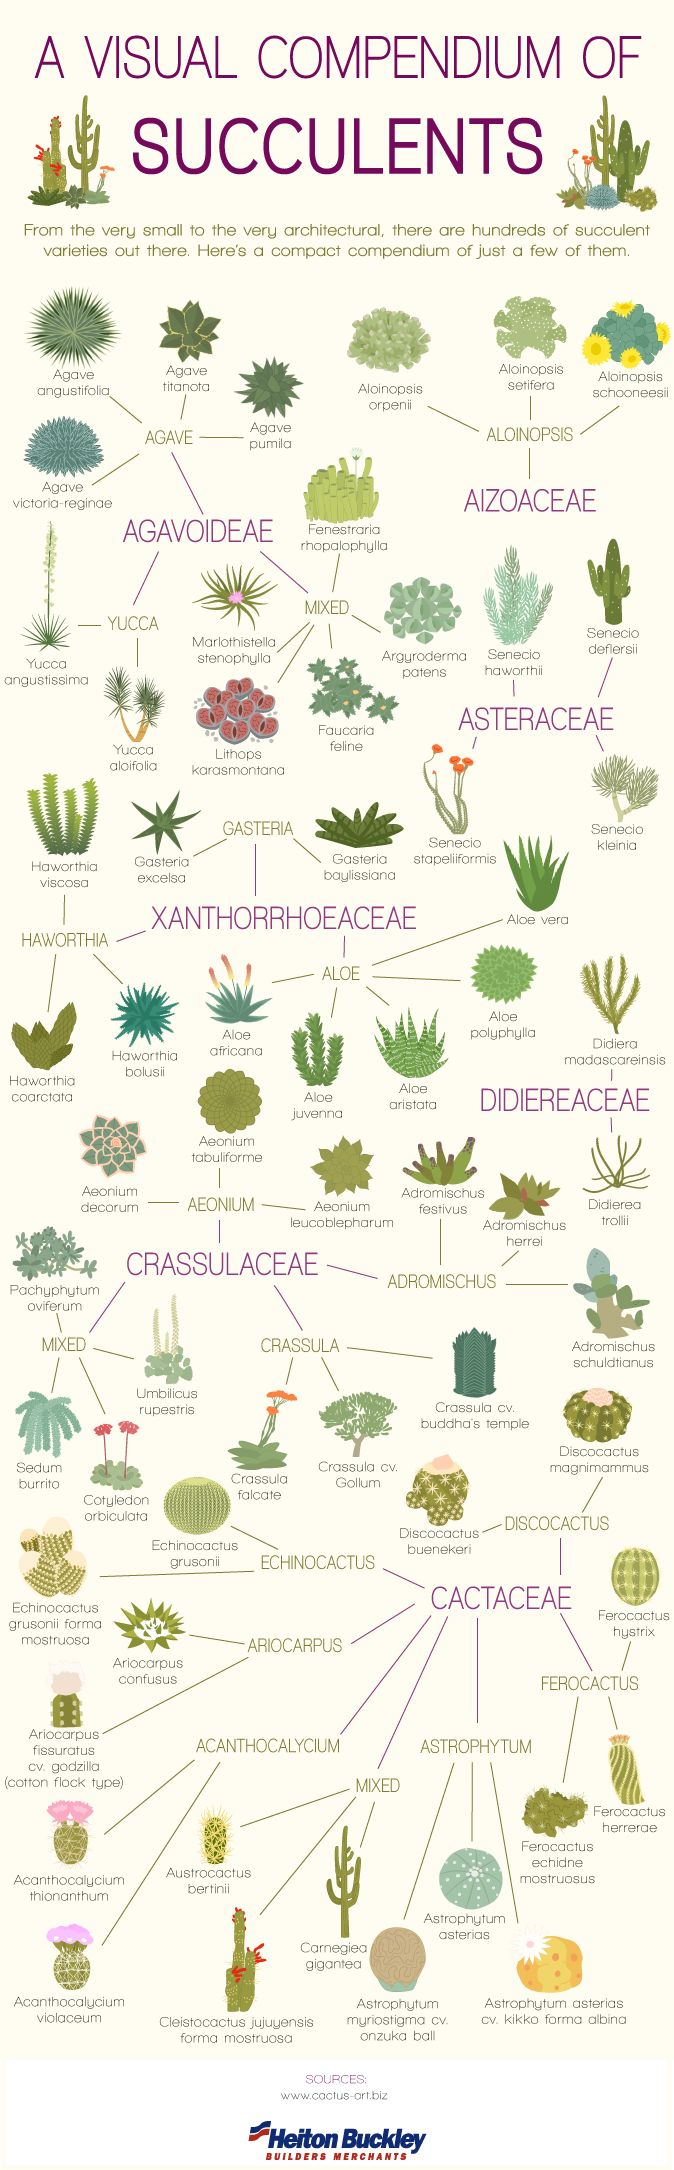 Succulents are definitely a happening trend right now. Here's some help sorting them out!